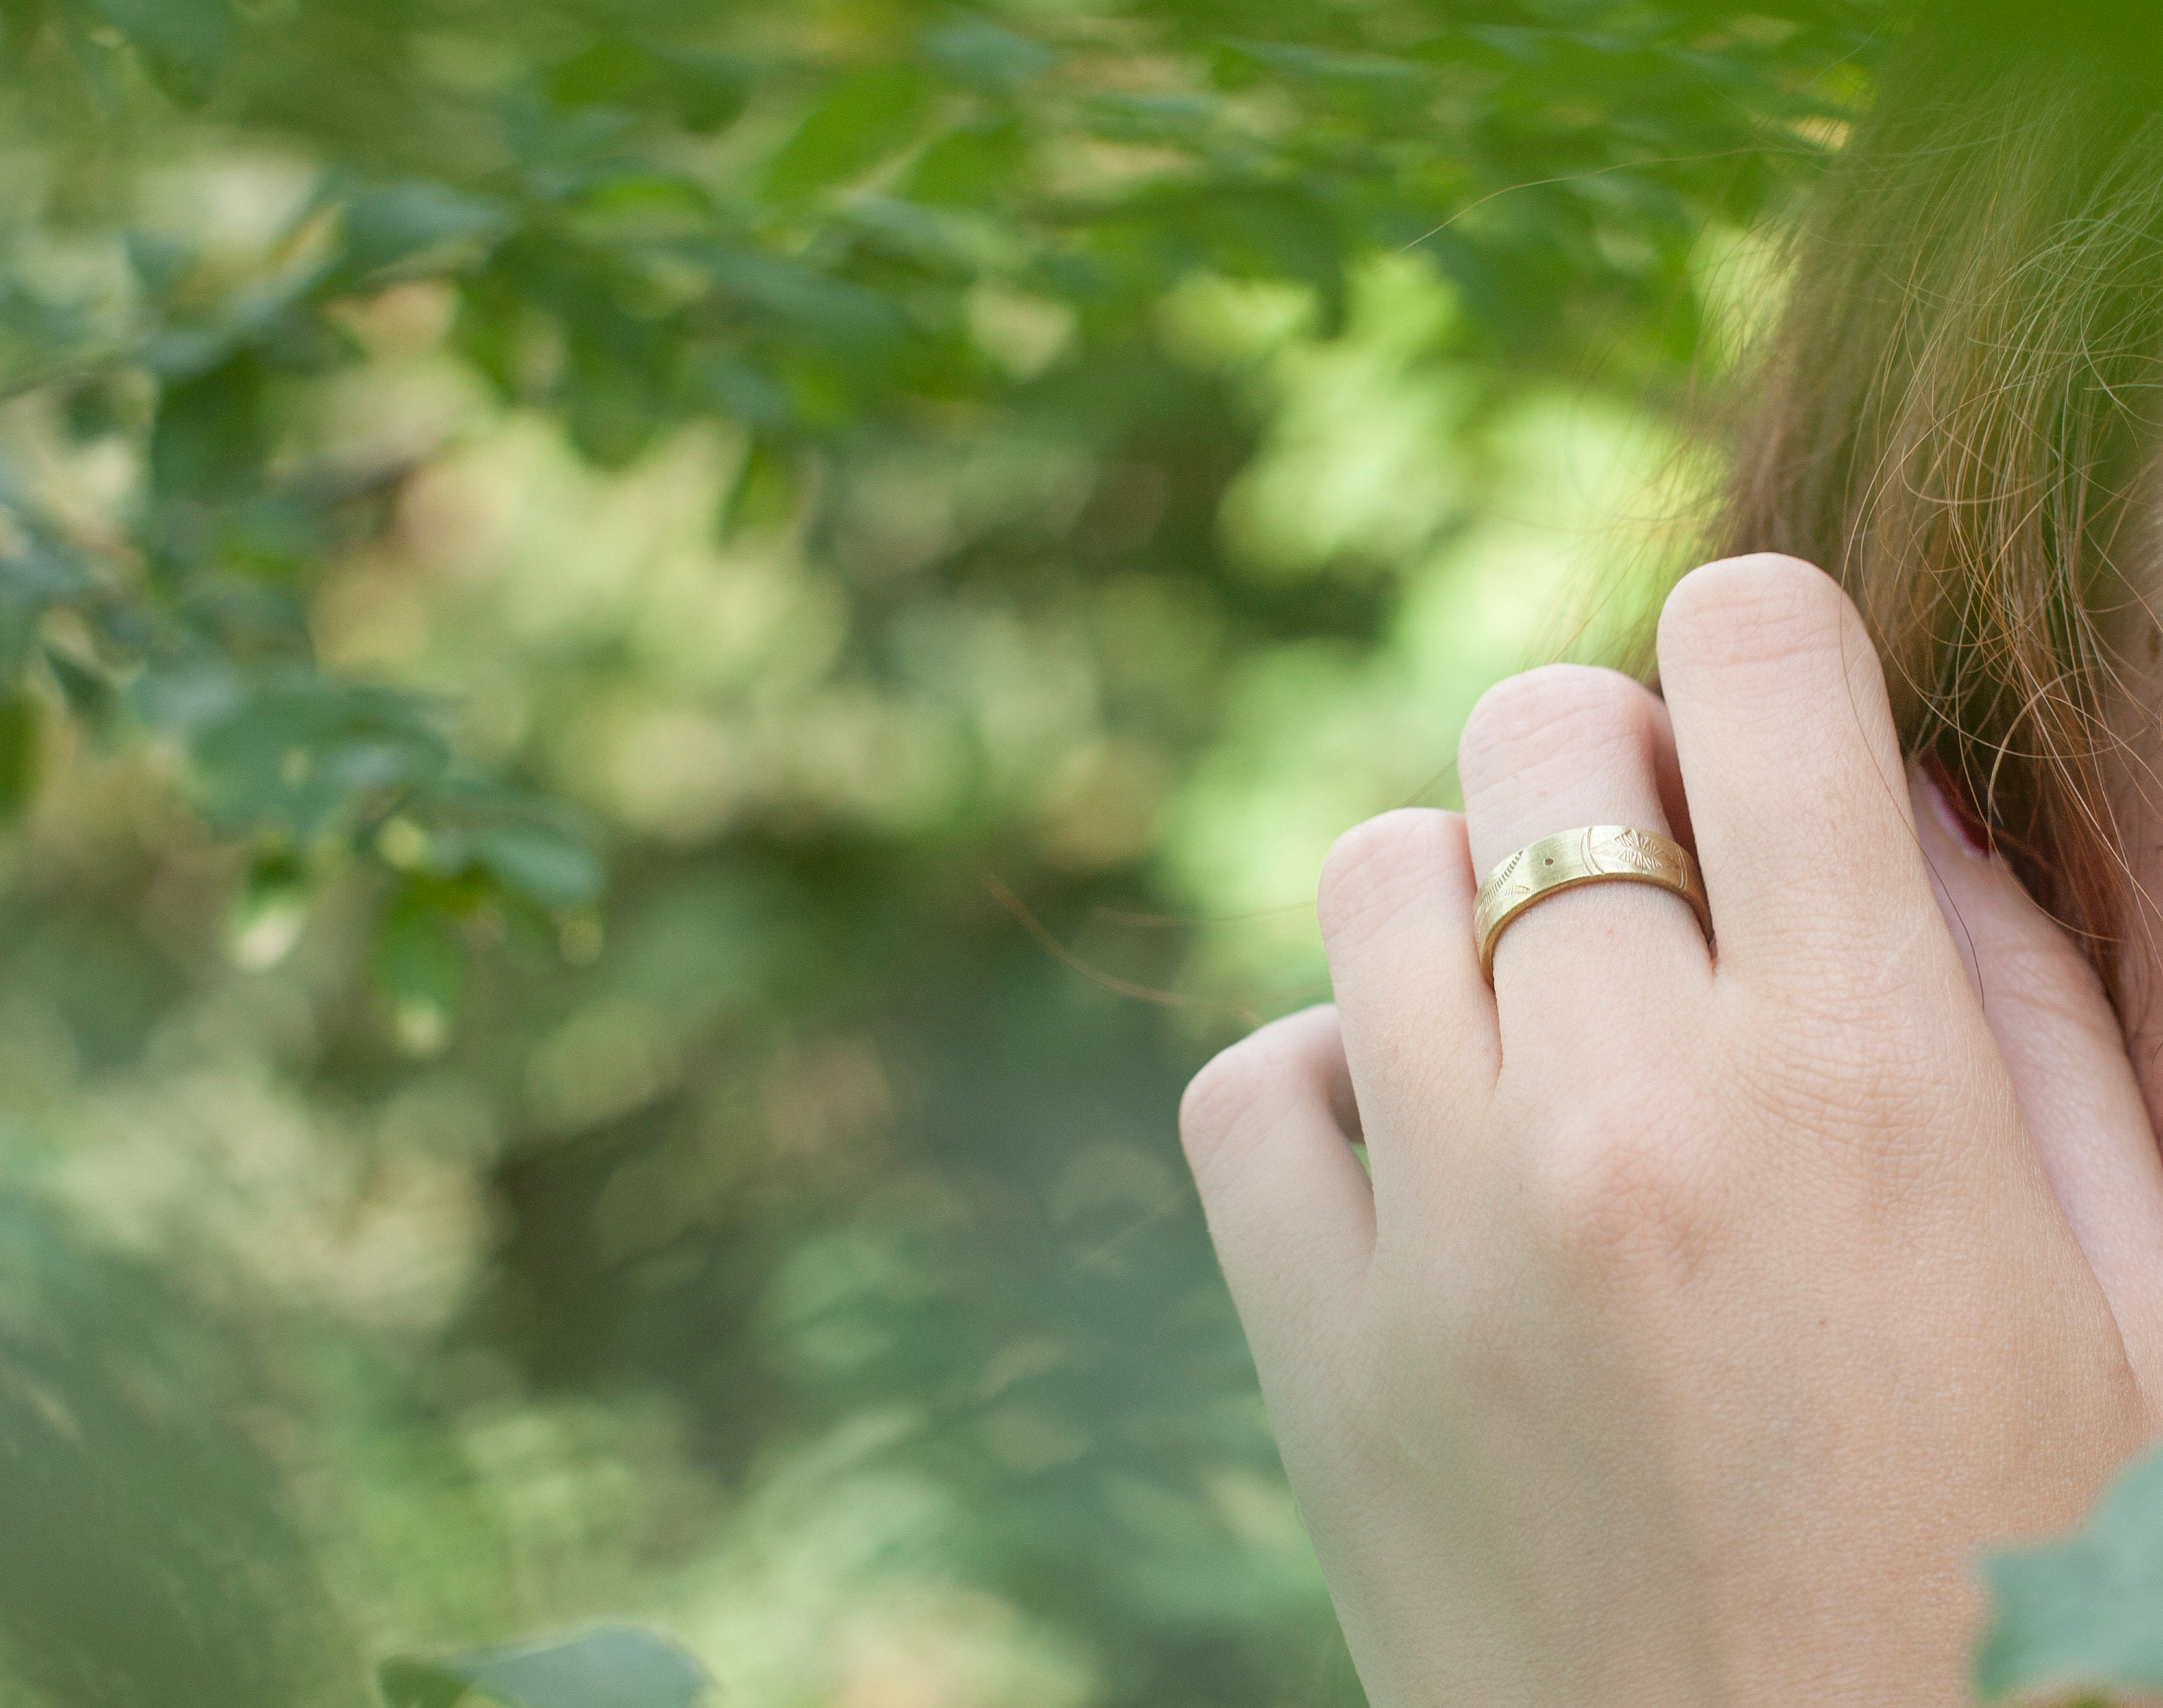 Adjustable ring in brass with ethnic patterns. 2 ways to wear it